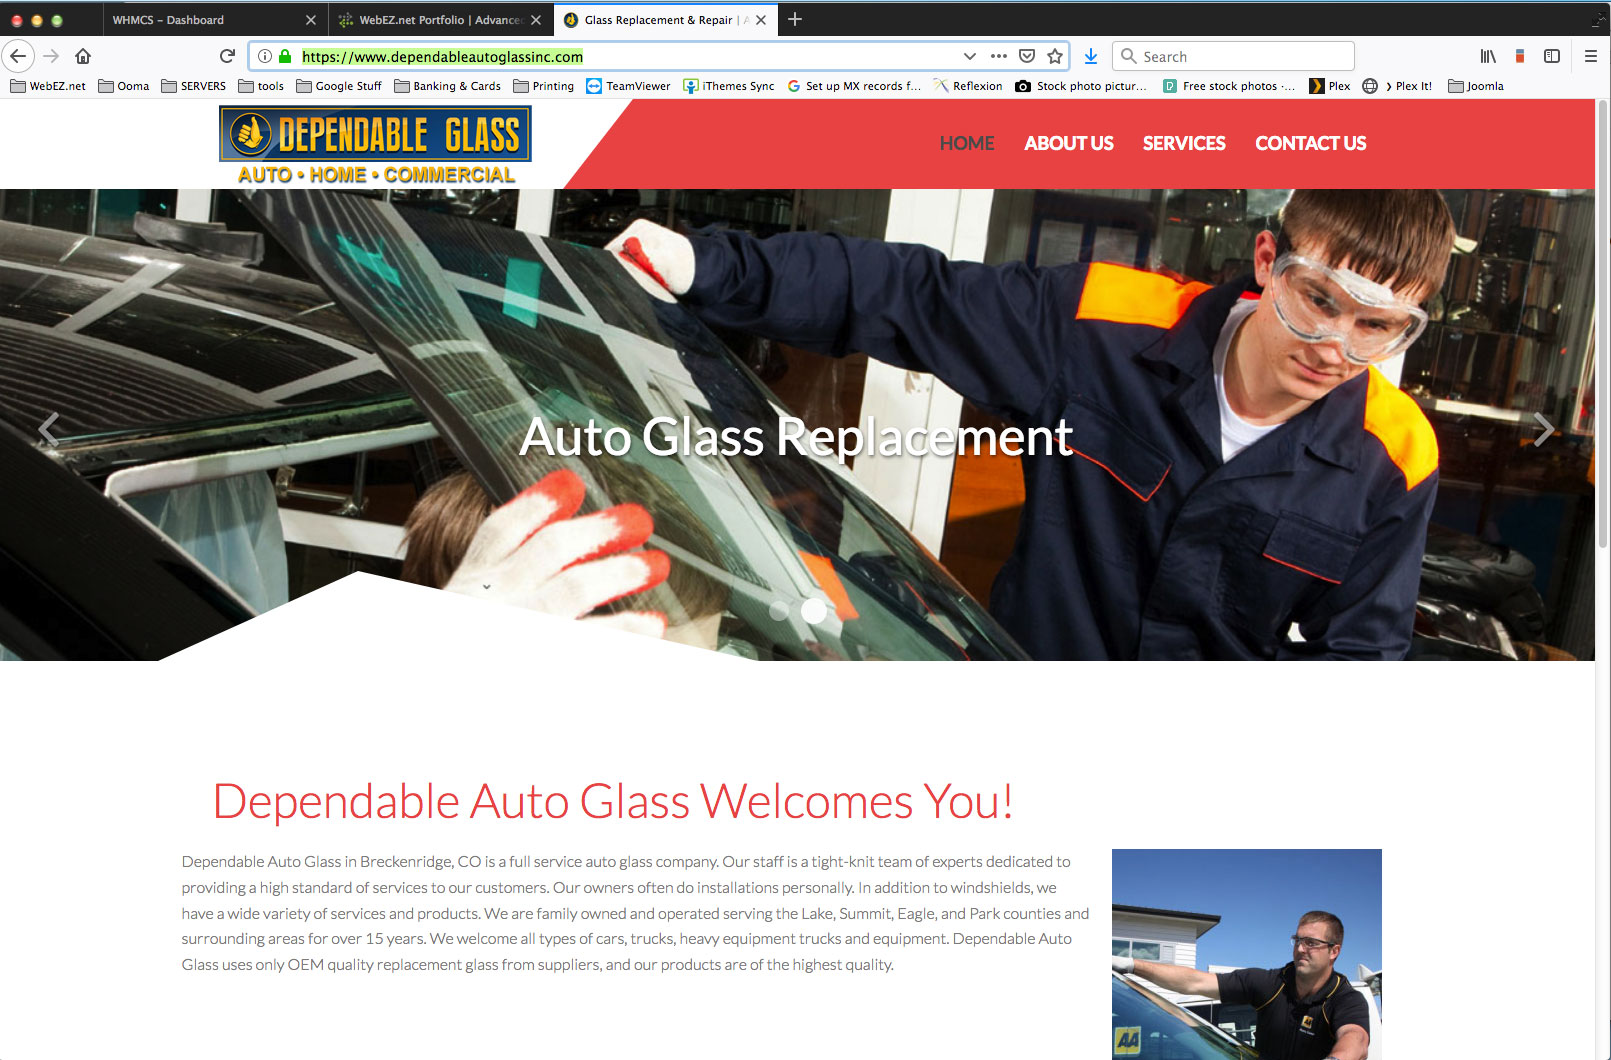 Dependable Auto Glass Inc